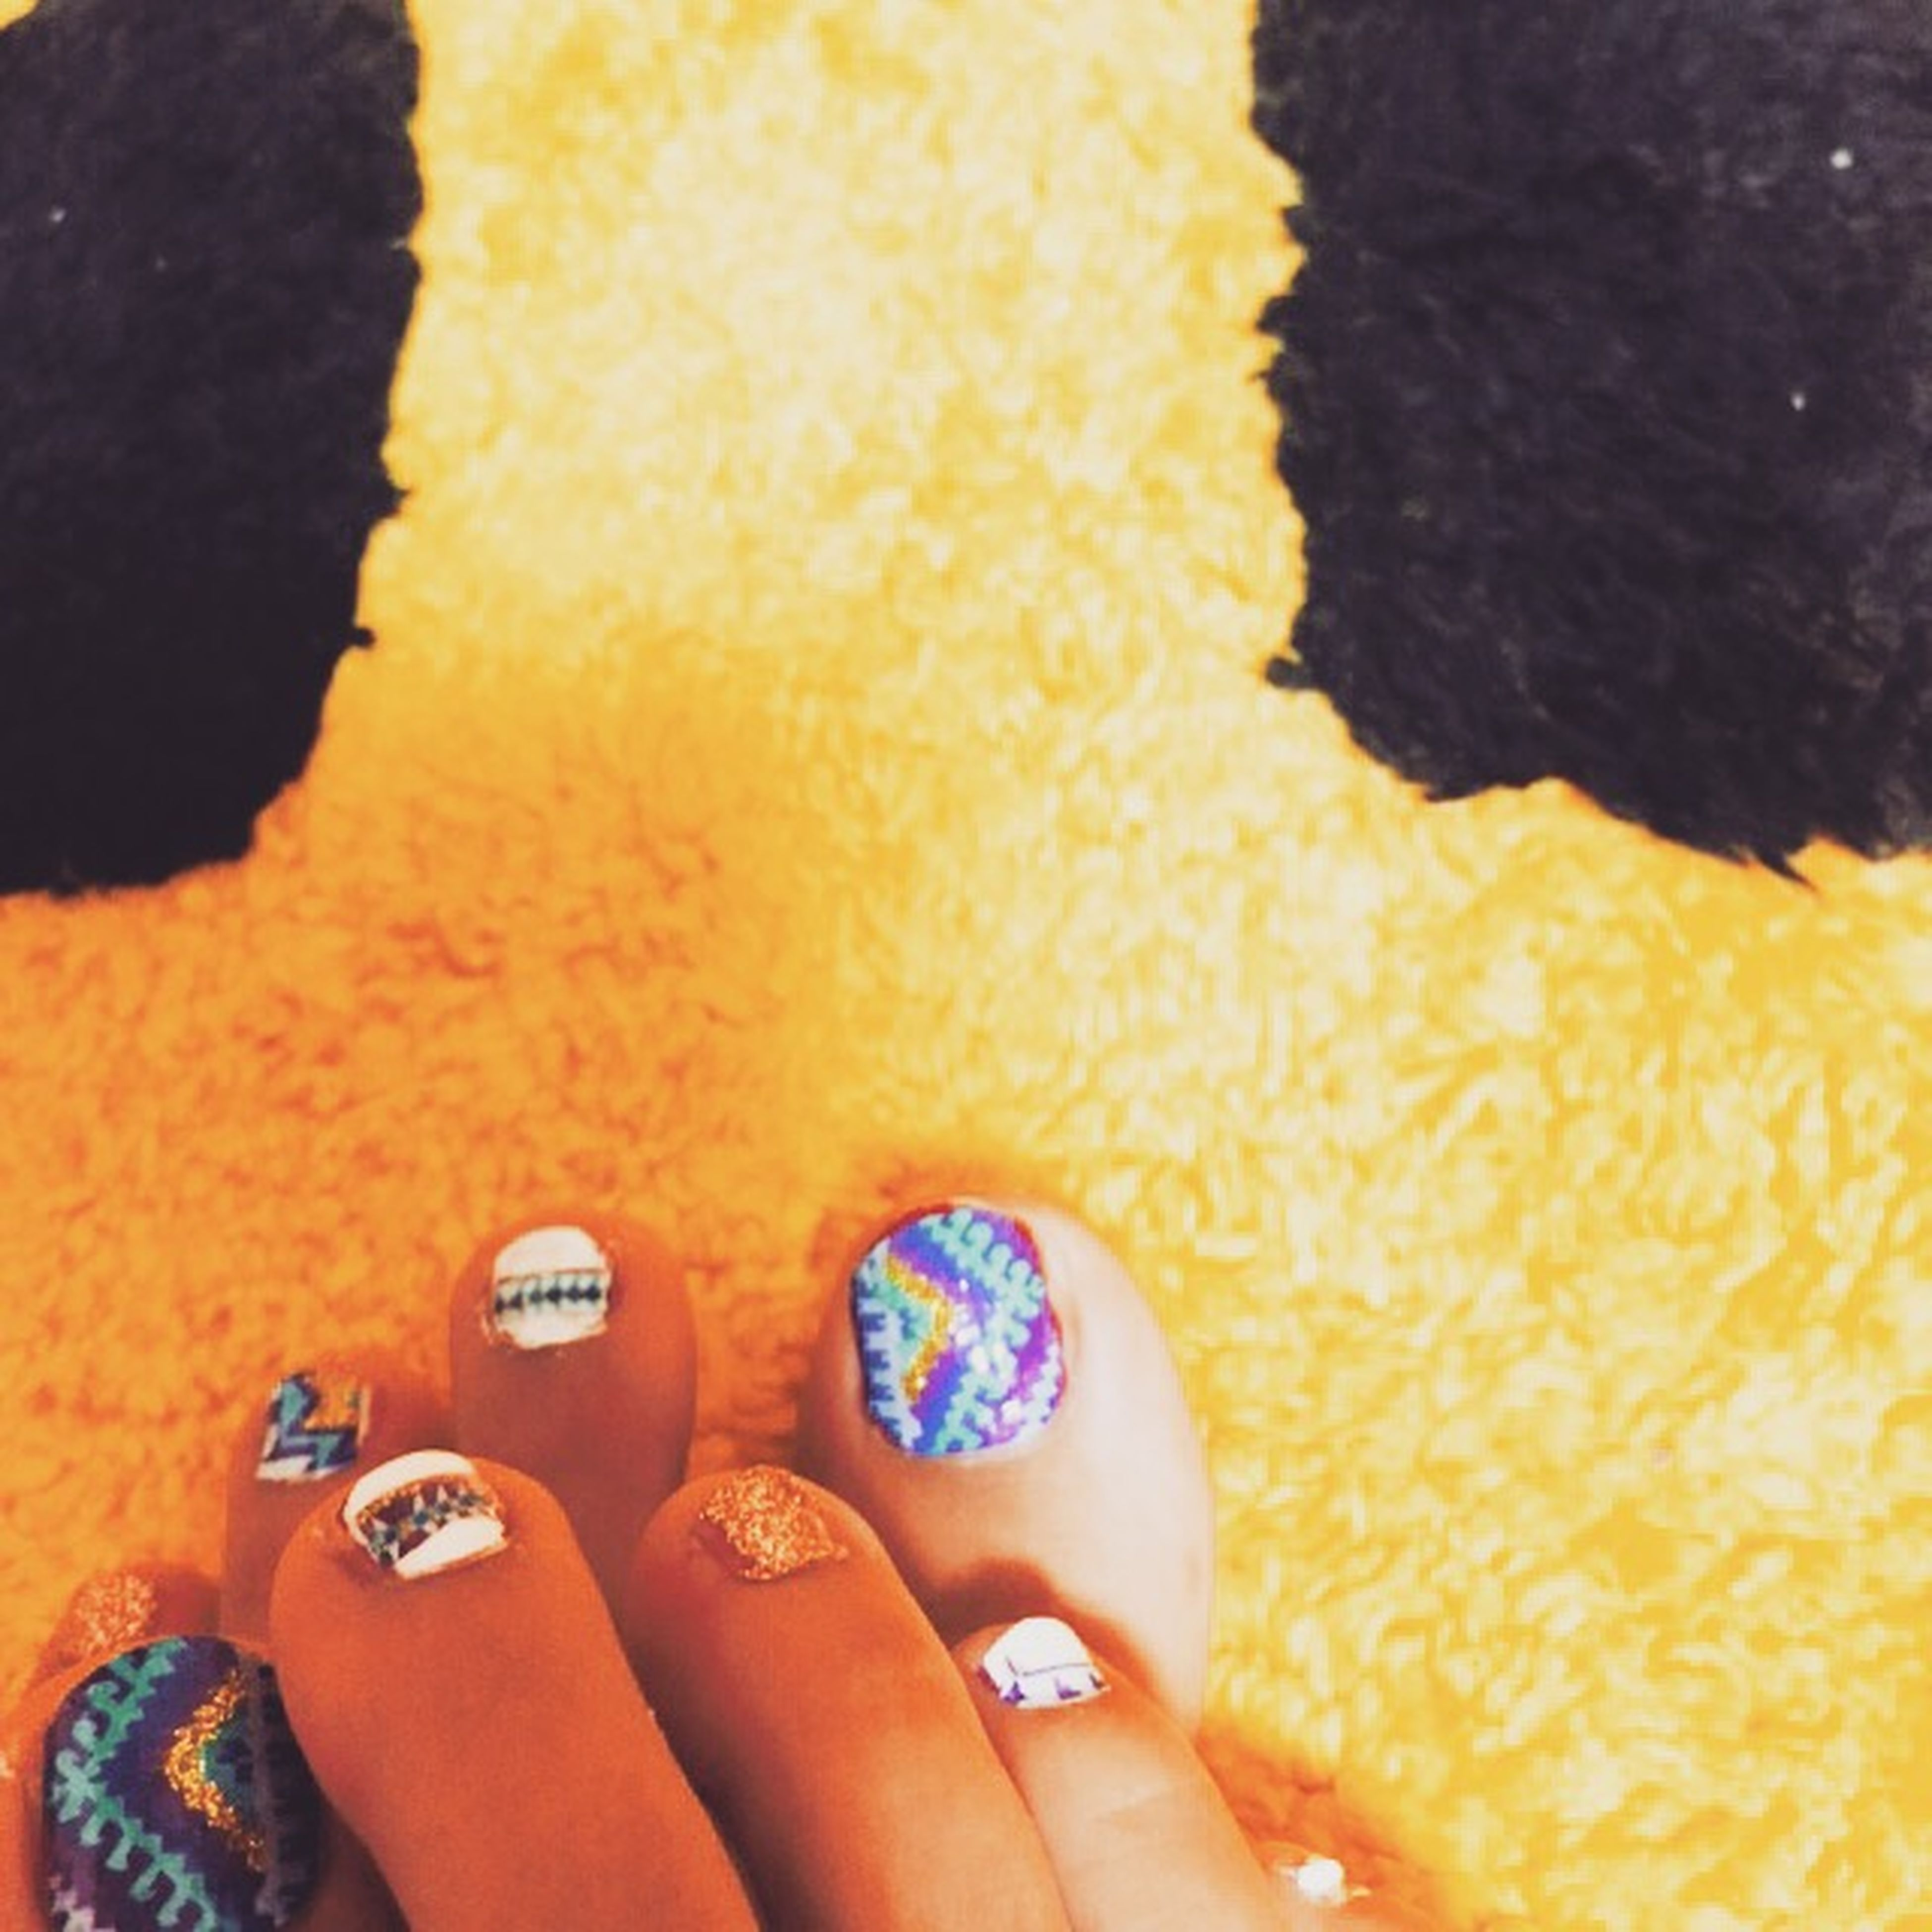 lifestyles, yellow, leisure activity, person, part of, personal perspective, indoors, holding, close-up, high angle view, unrecognizable person, nail polish, orange color, cropped, men, childhood